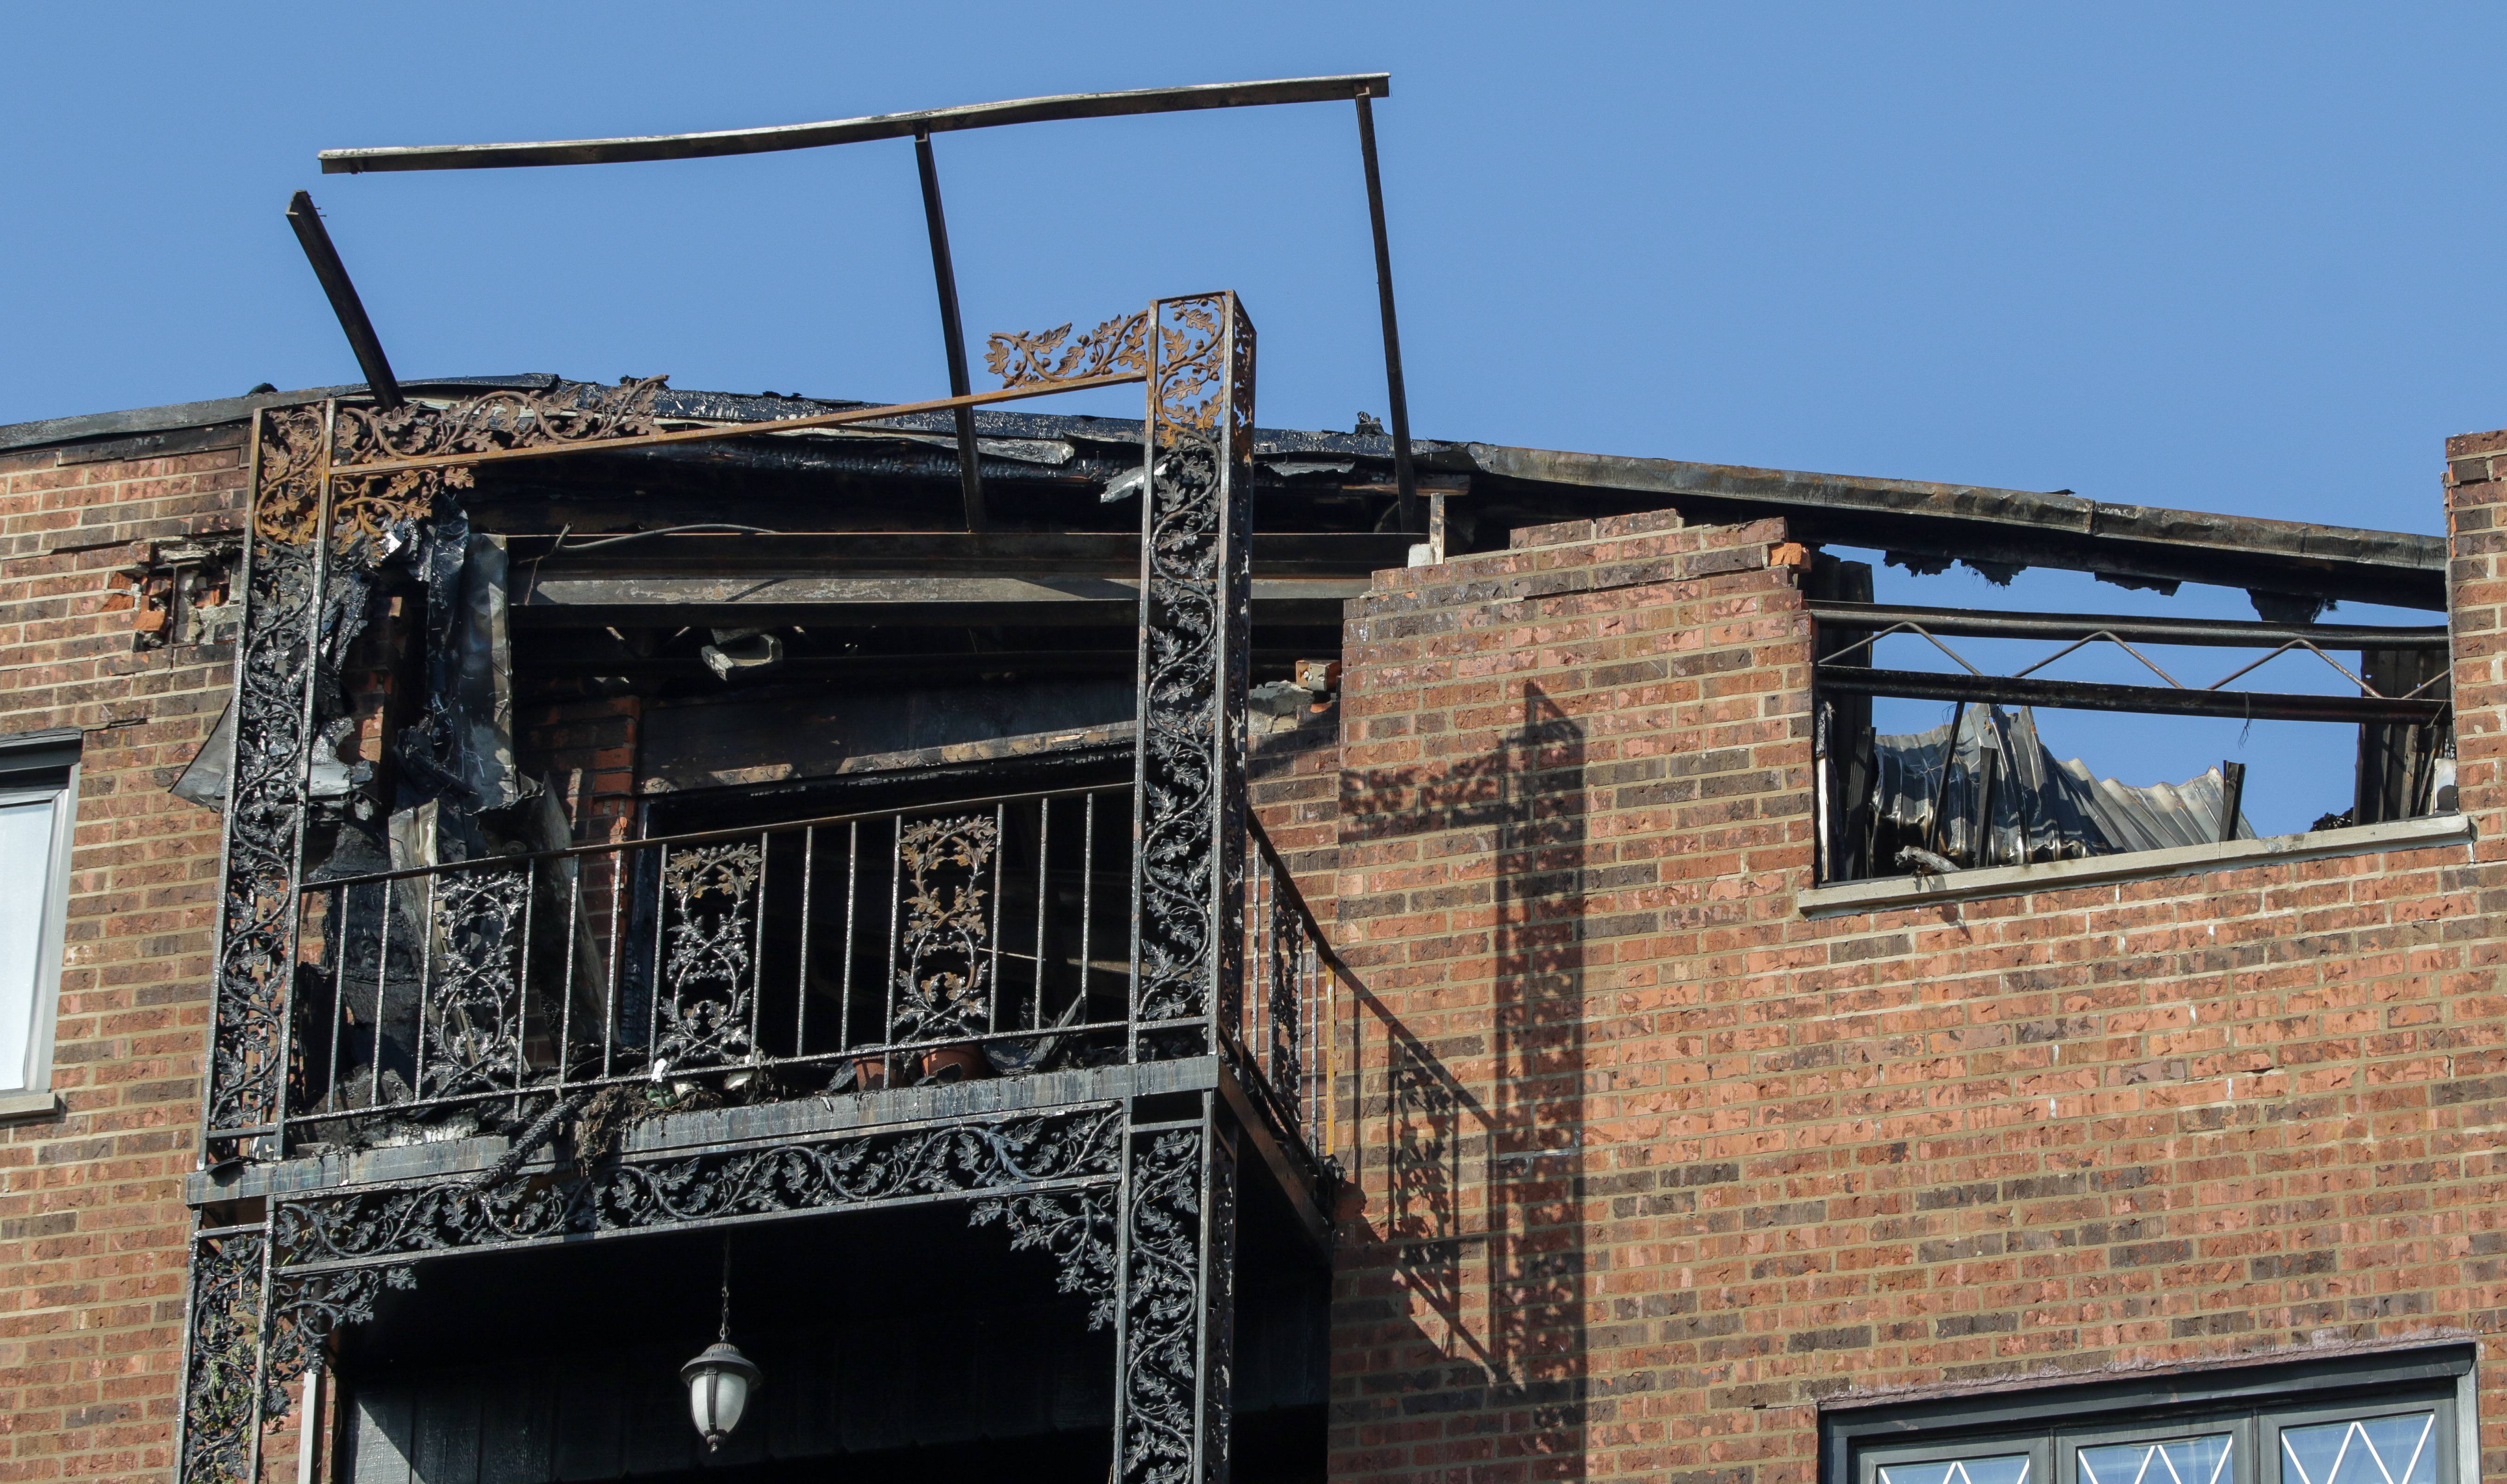 A Sunday morning fire at a condominium building in unincorporated Maine Township left the top corner of the building damaged with a partial roof collapse, missing bricks and a charred interior. But officials said Monday the building may be able to be repaired.